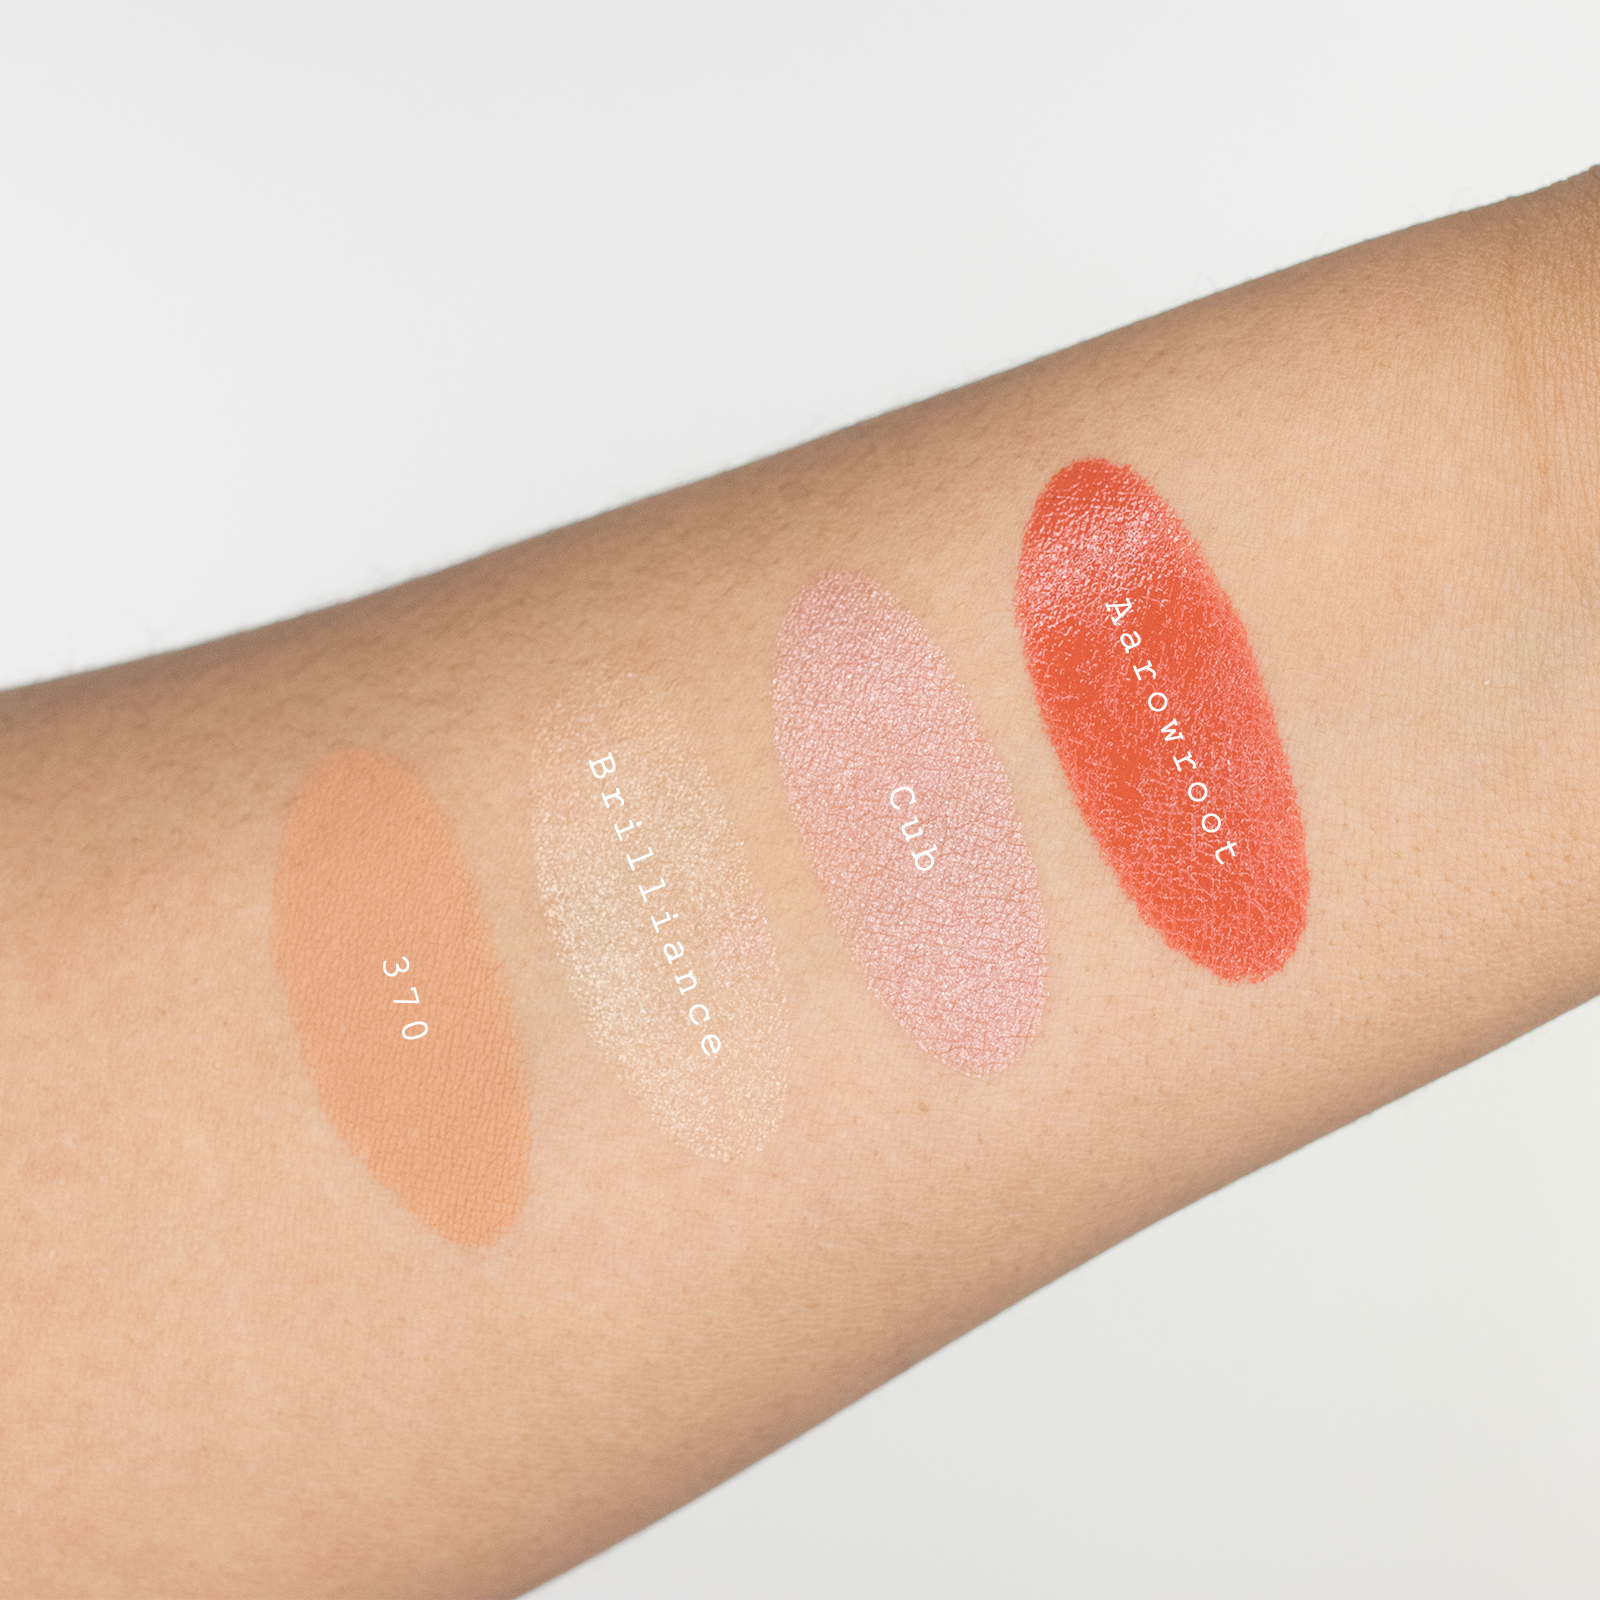 New Spring Makeup Swatches